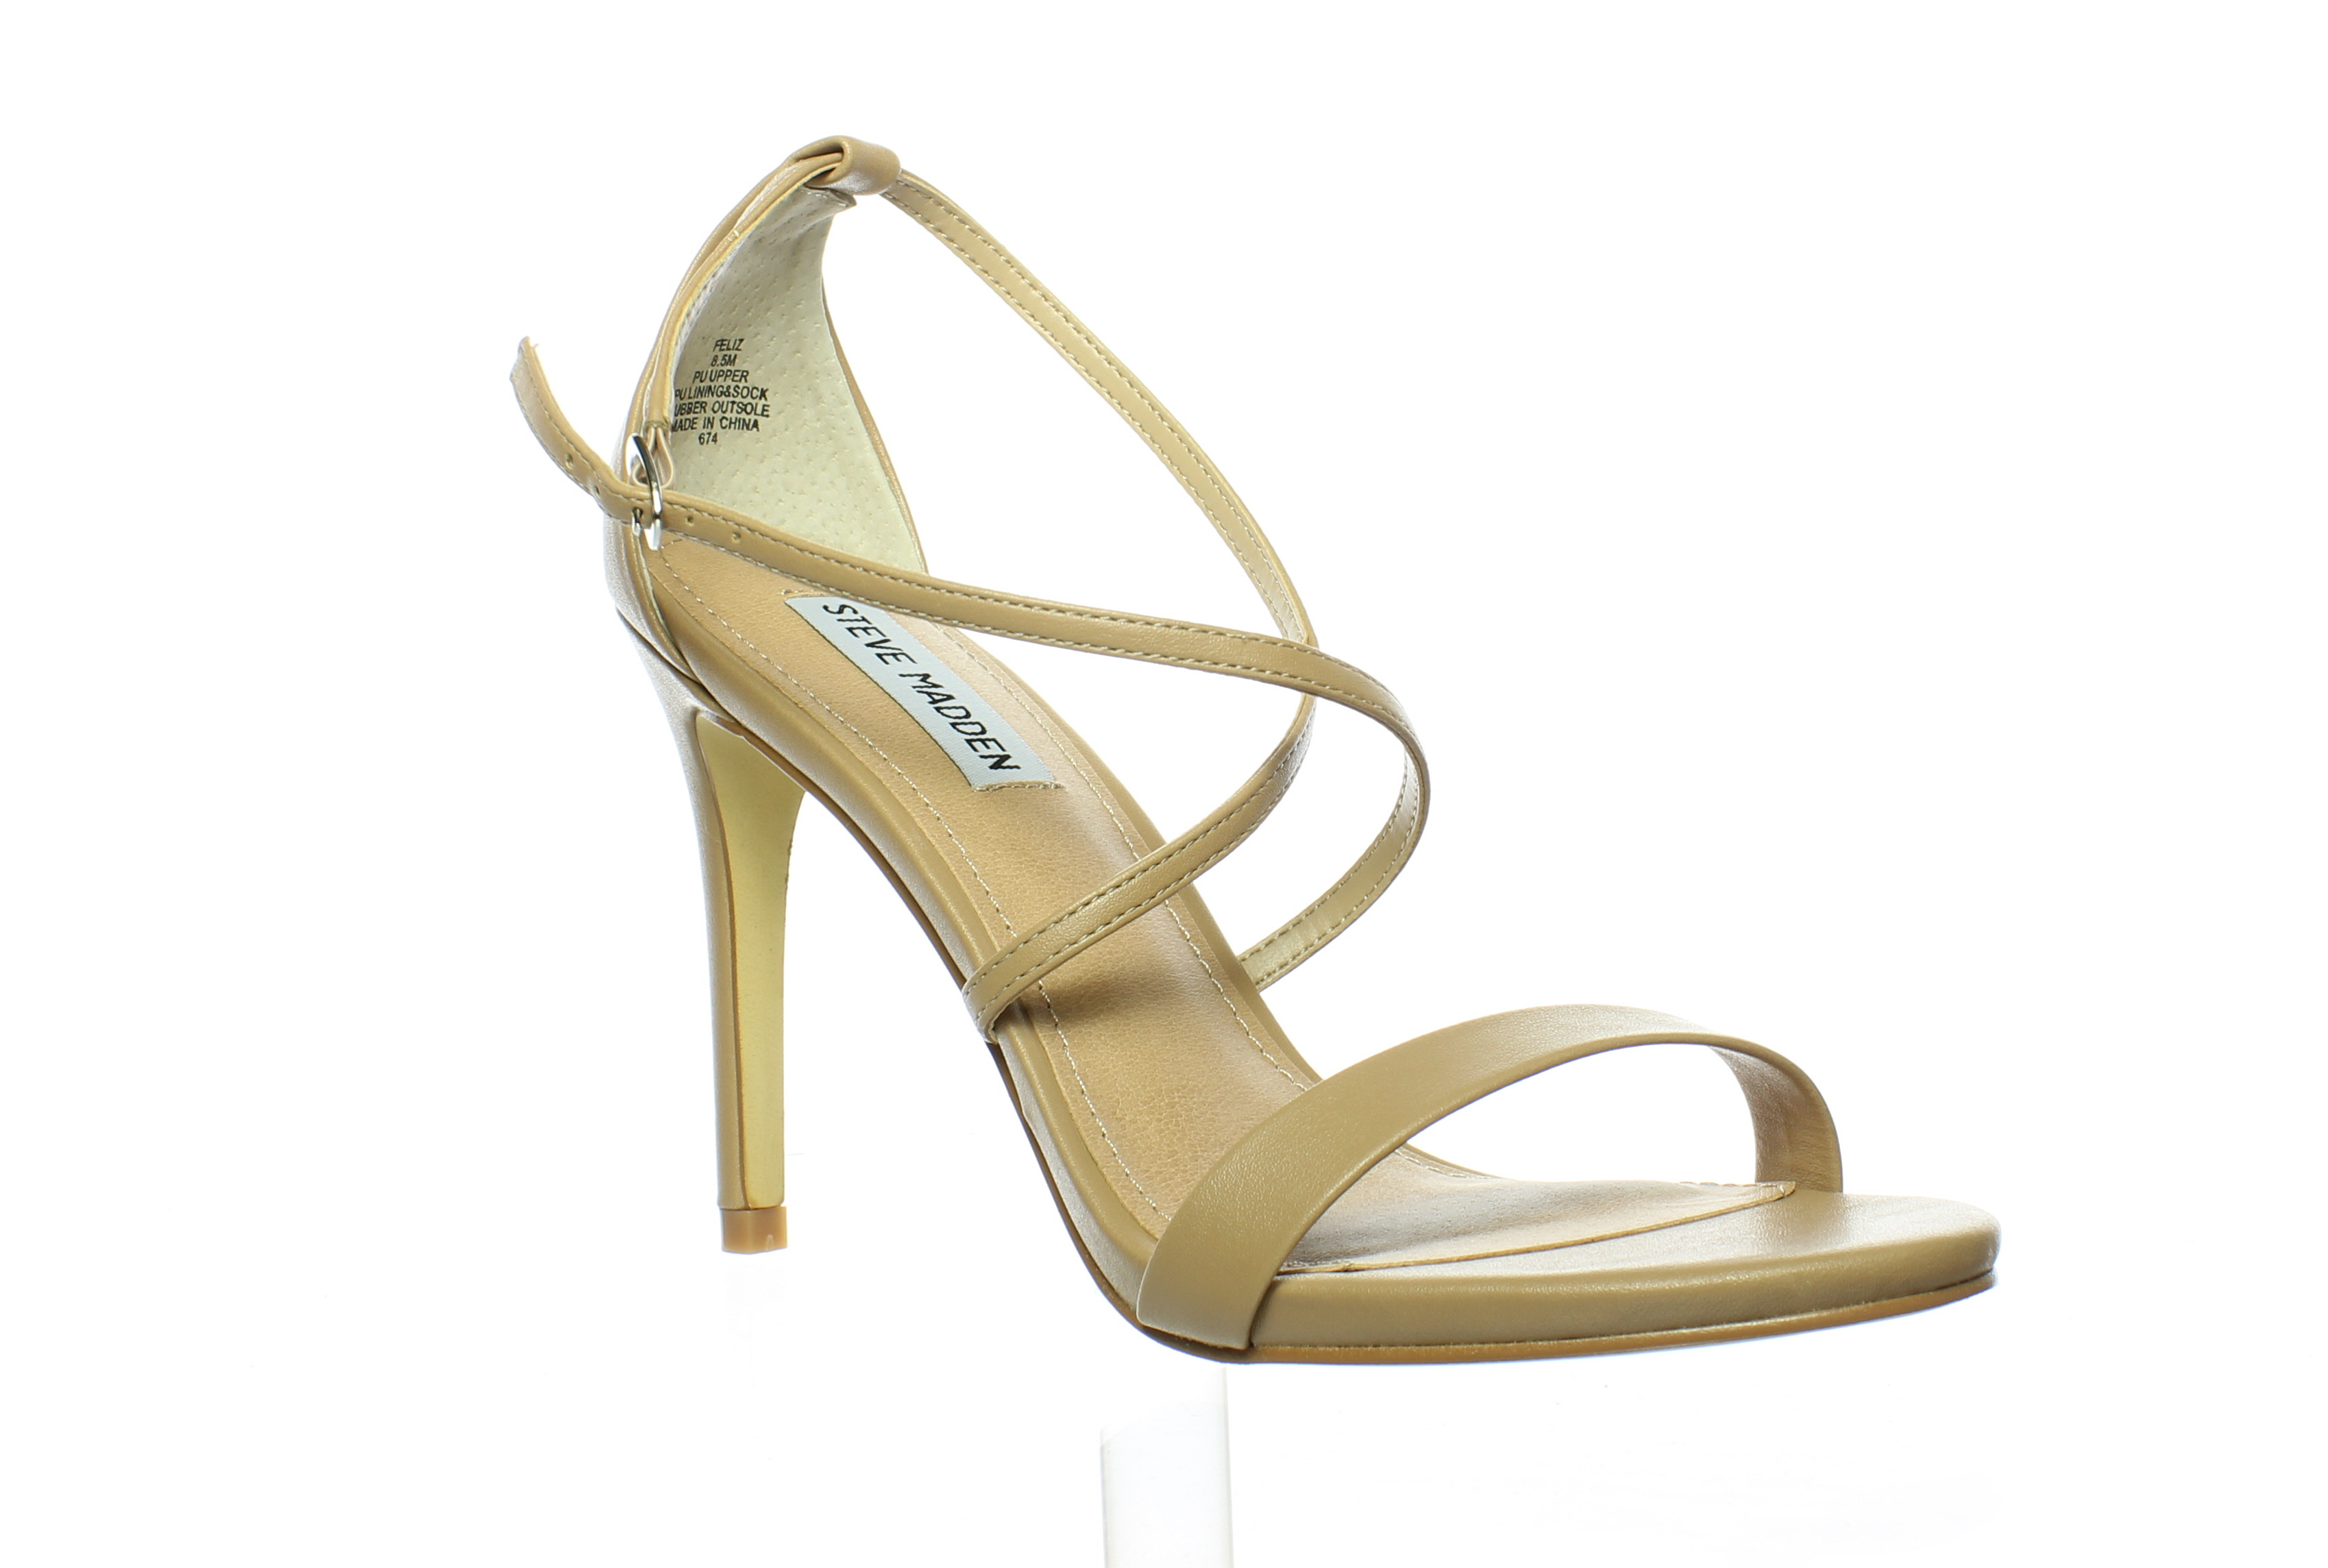 6acd6fb1a10 Steve Madden Womens Feliz Natural Ankle Strap Heels Size 8.5 (15312 ...